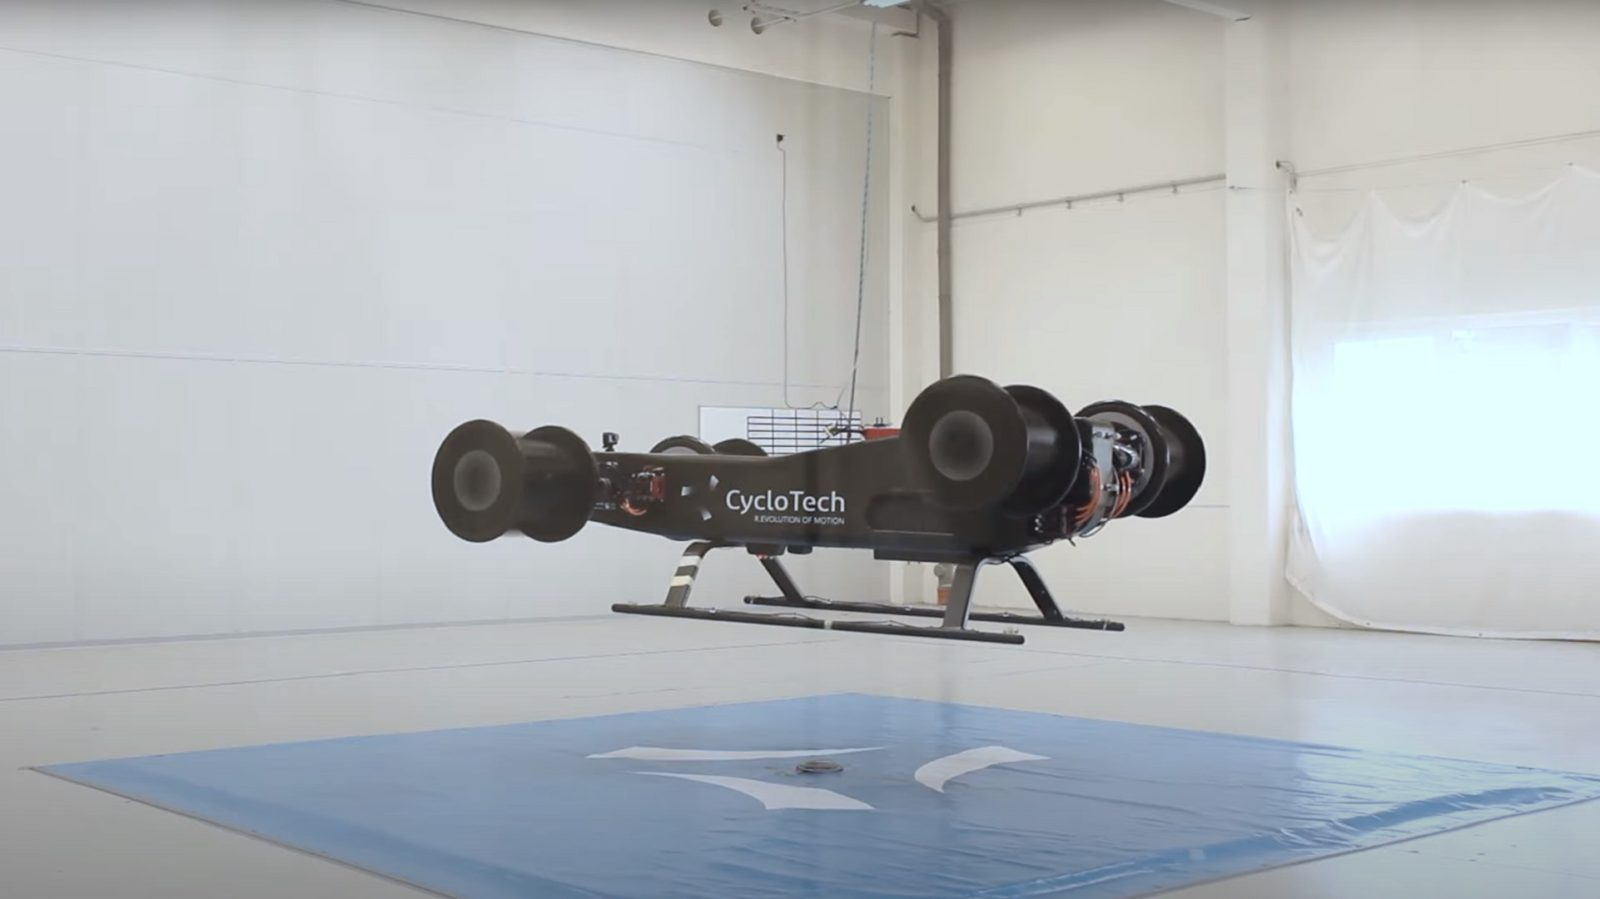 a-different-kind-of-vtol-nails-its-first-test-flight,-uses-a-new-type-of-thrust-system